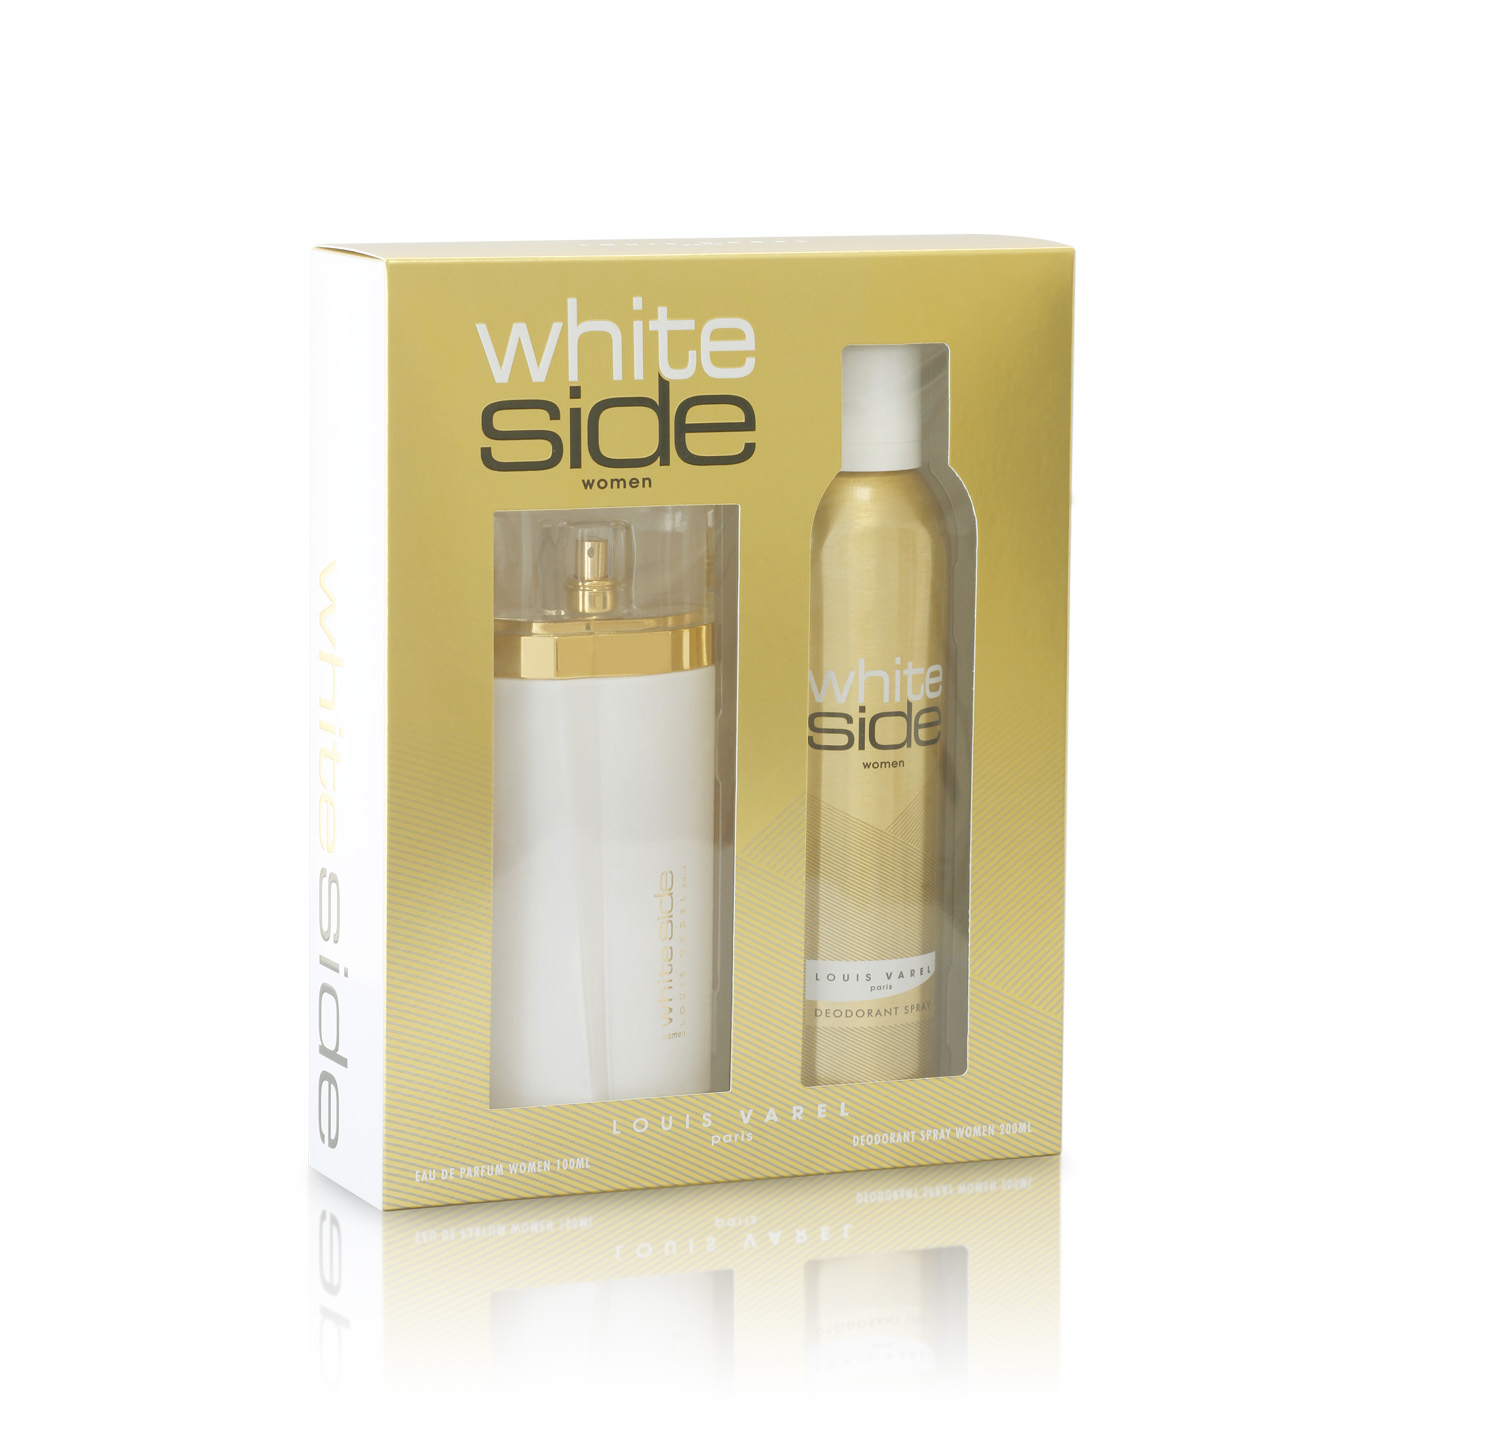 White Side Wome Gift set - Website